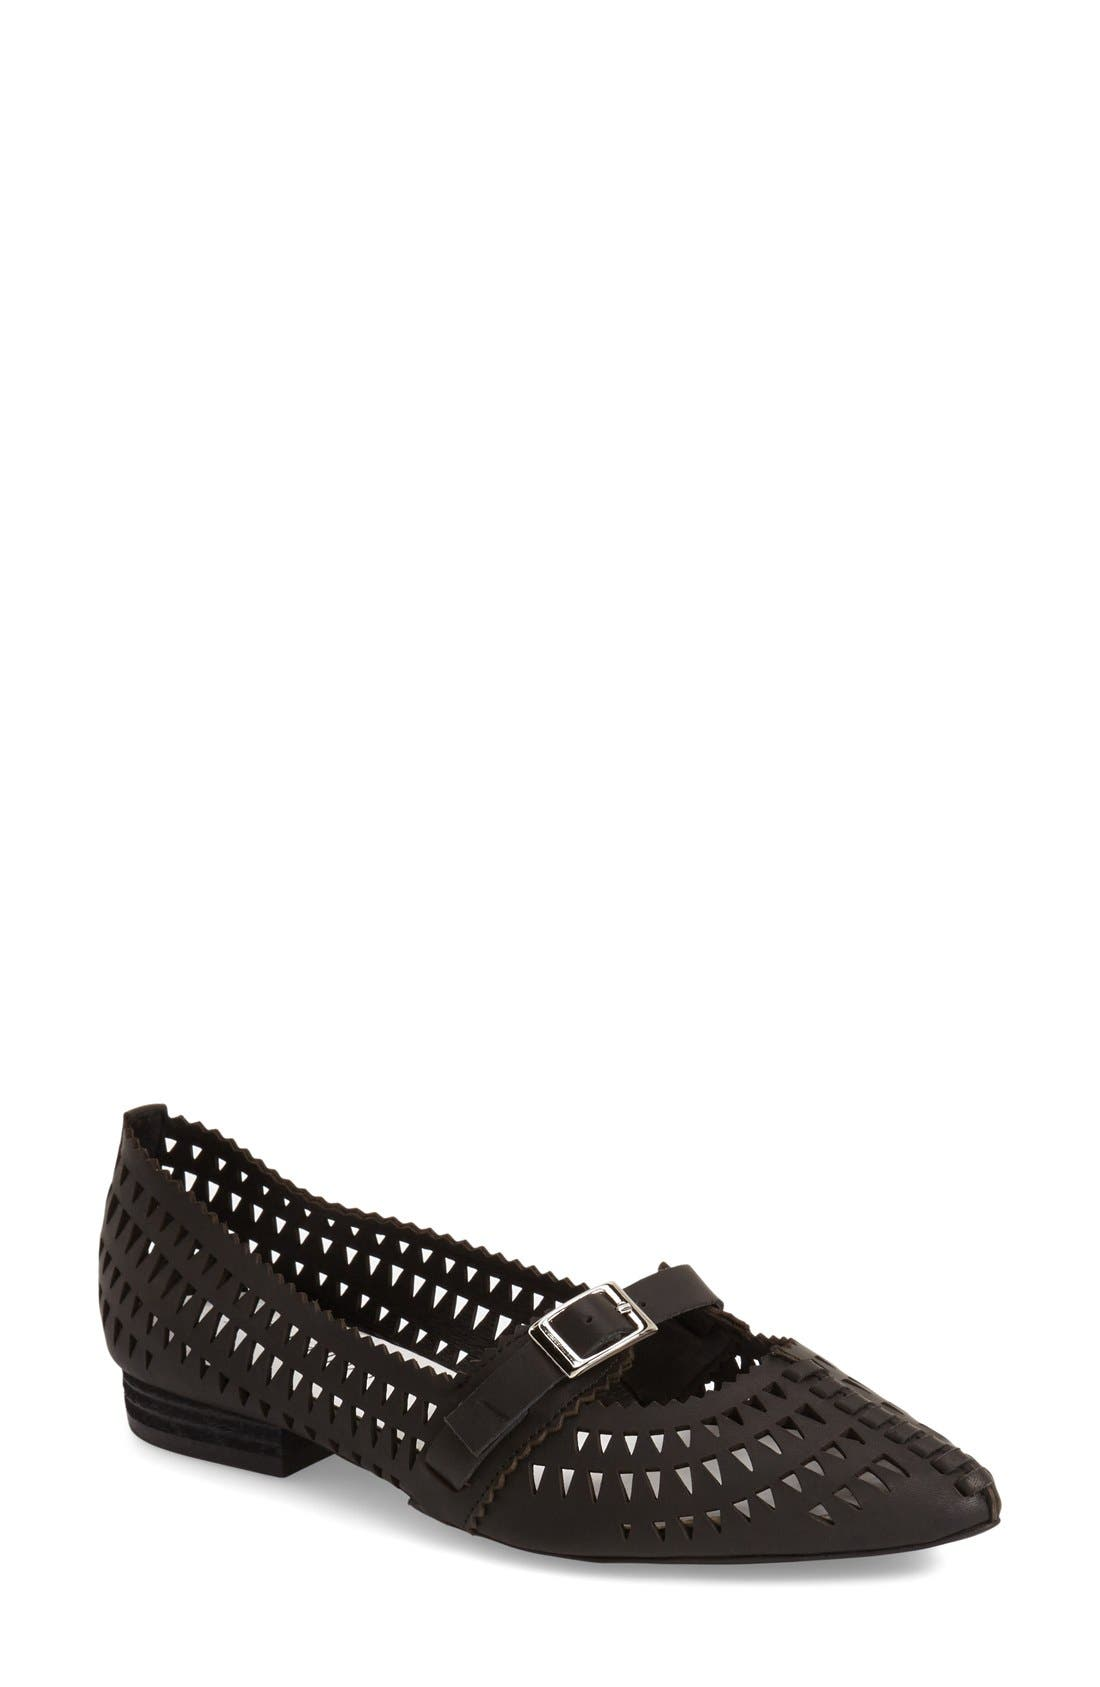 Main Image - Jeffrey Campbell 'Padme' Mary Jane Flat (Women)